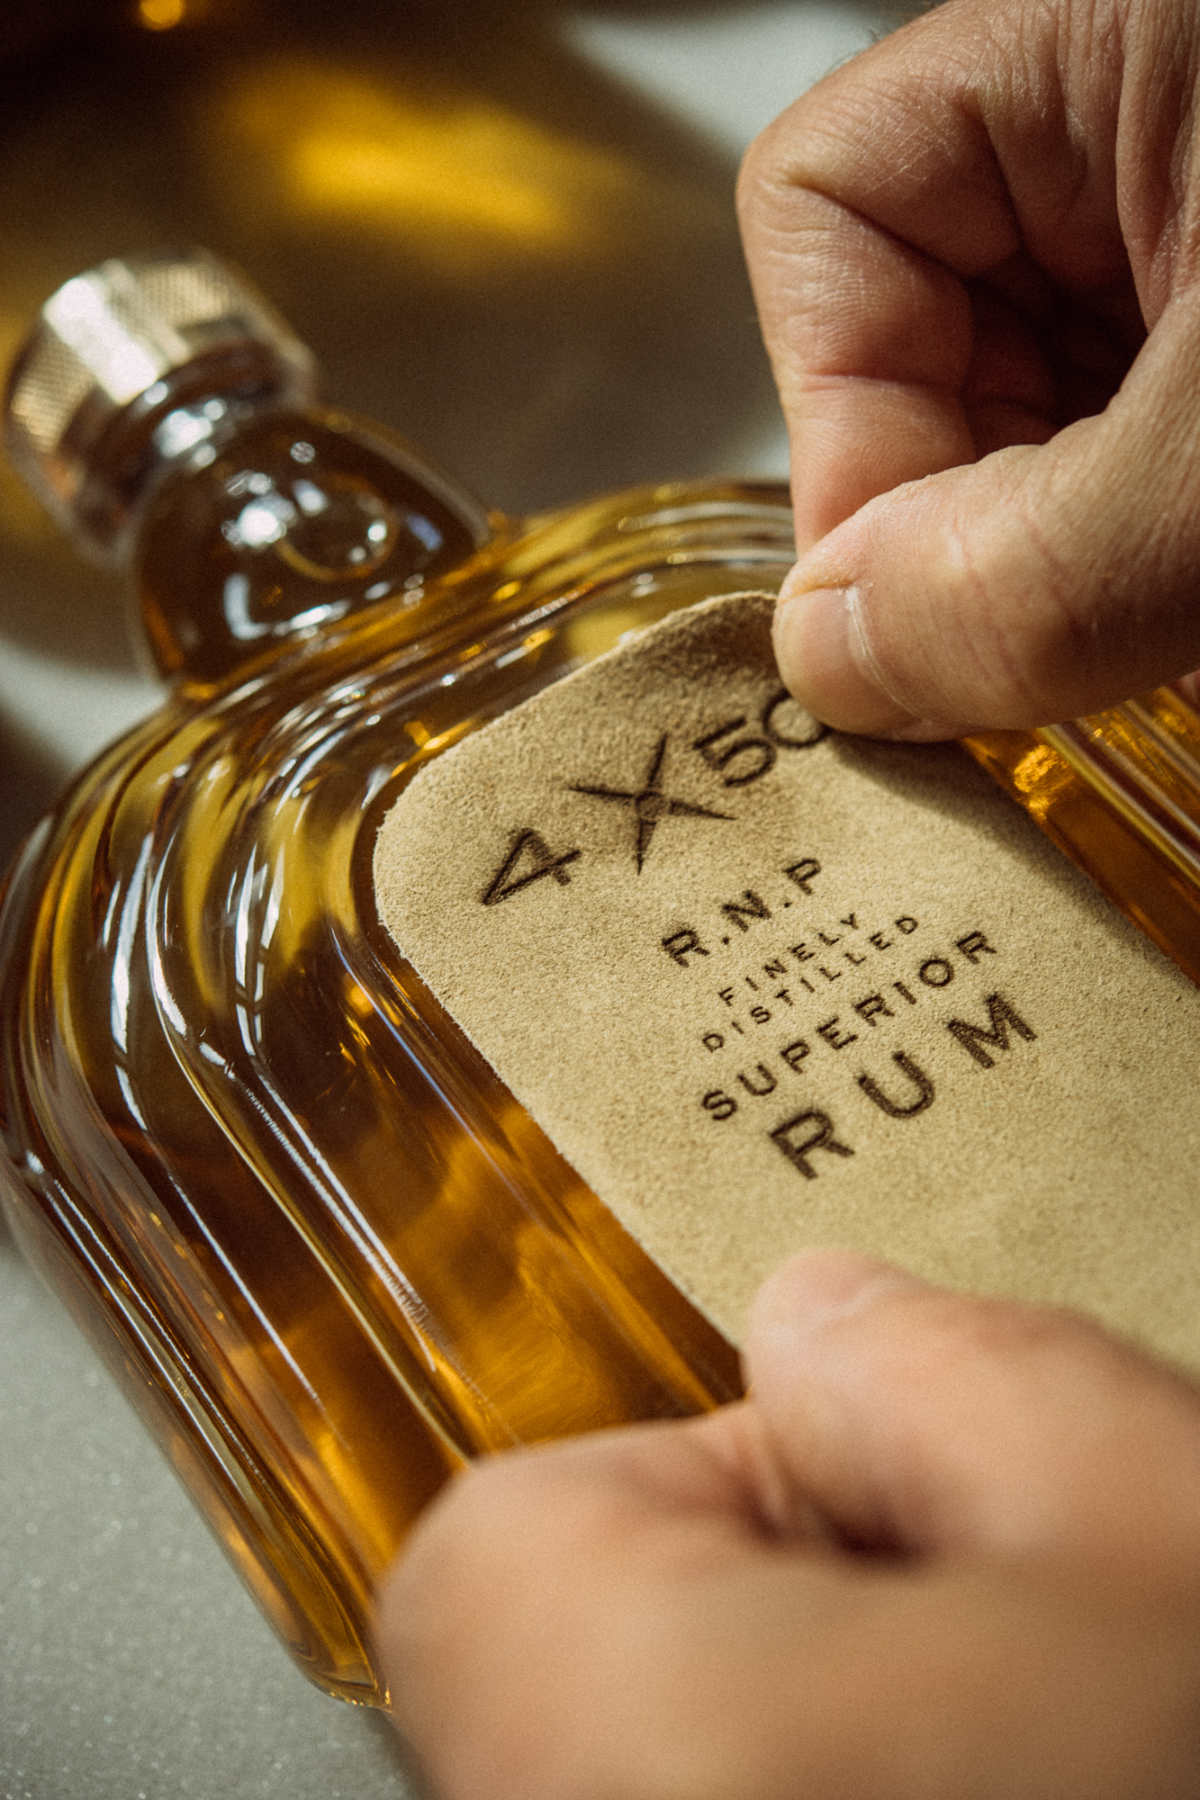 The World's First Social Rum - 4X50 R.N.P. Finely Distilled Superior Rum